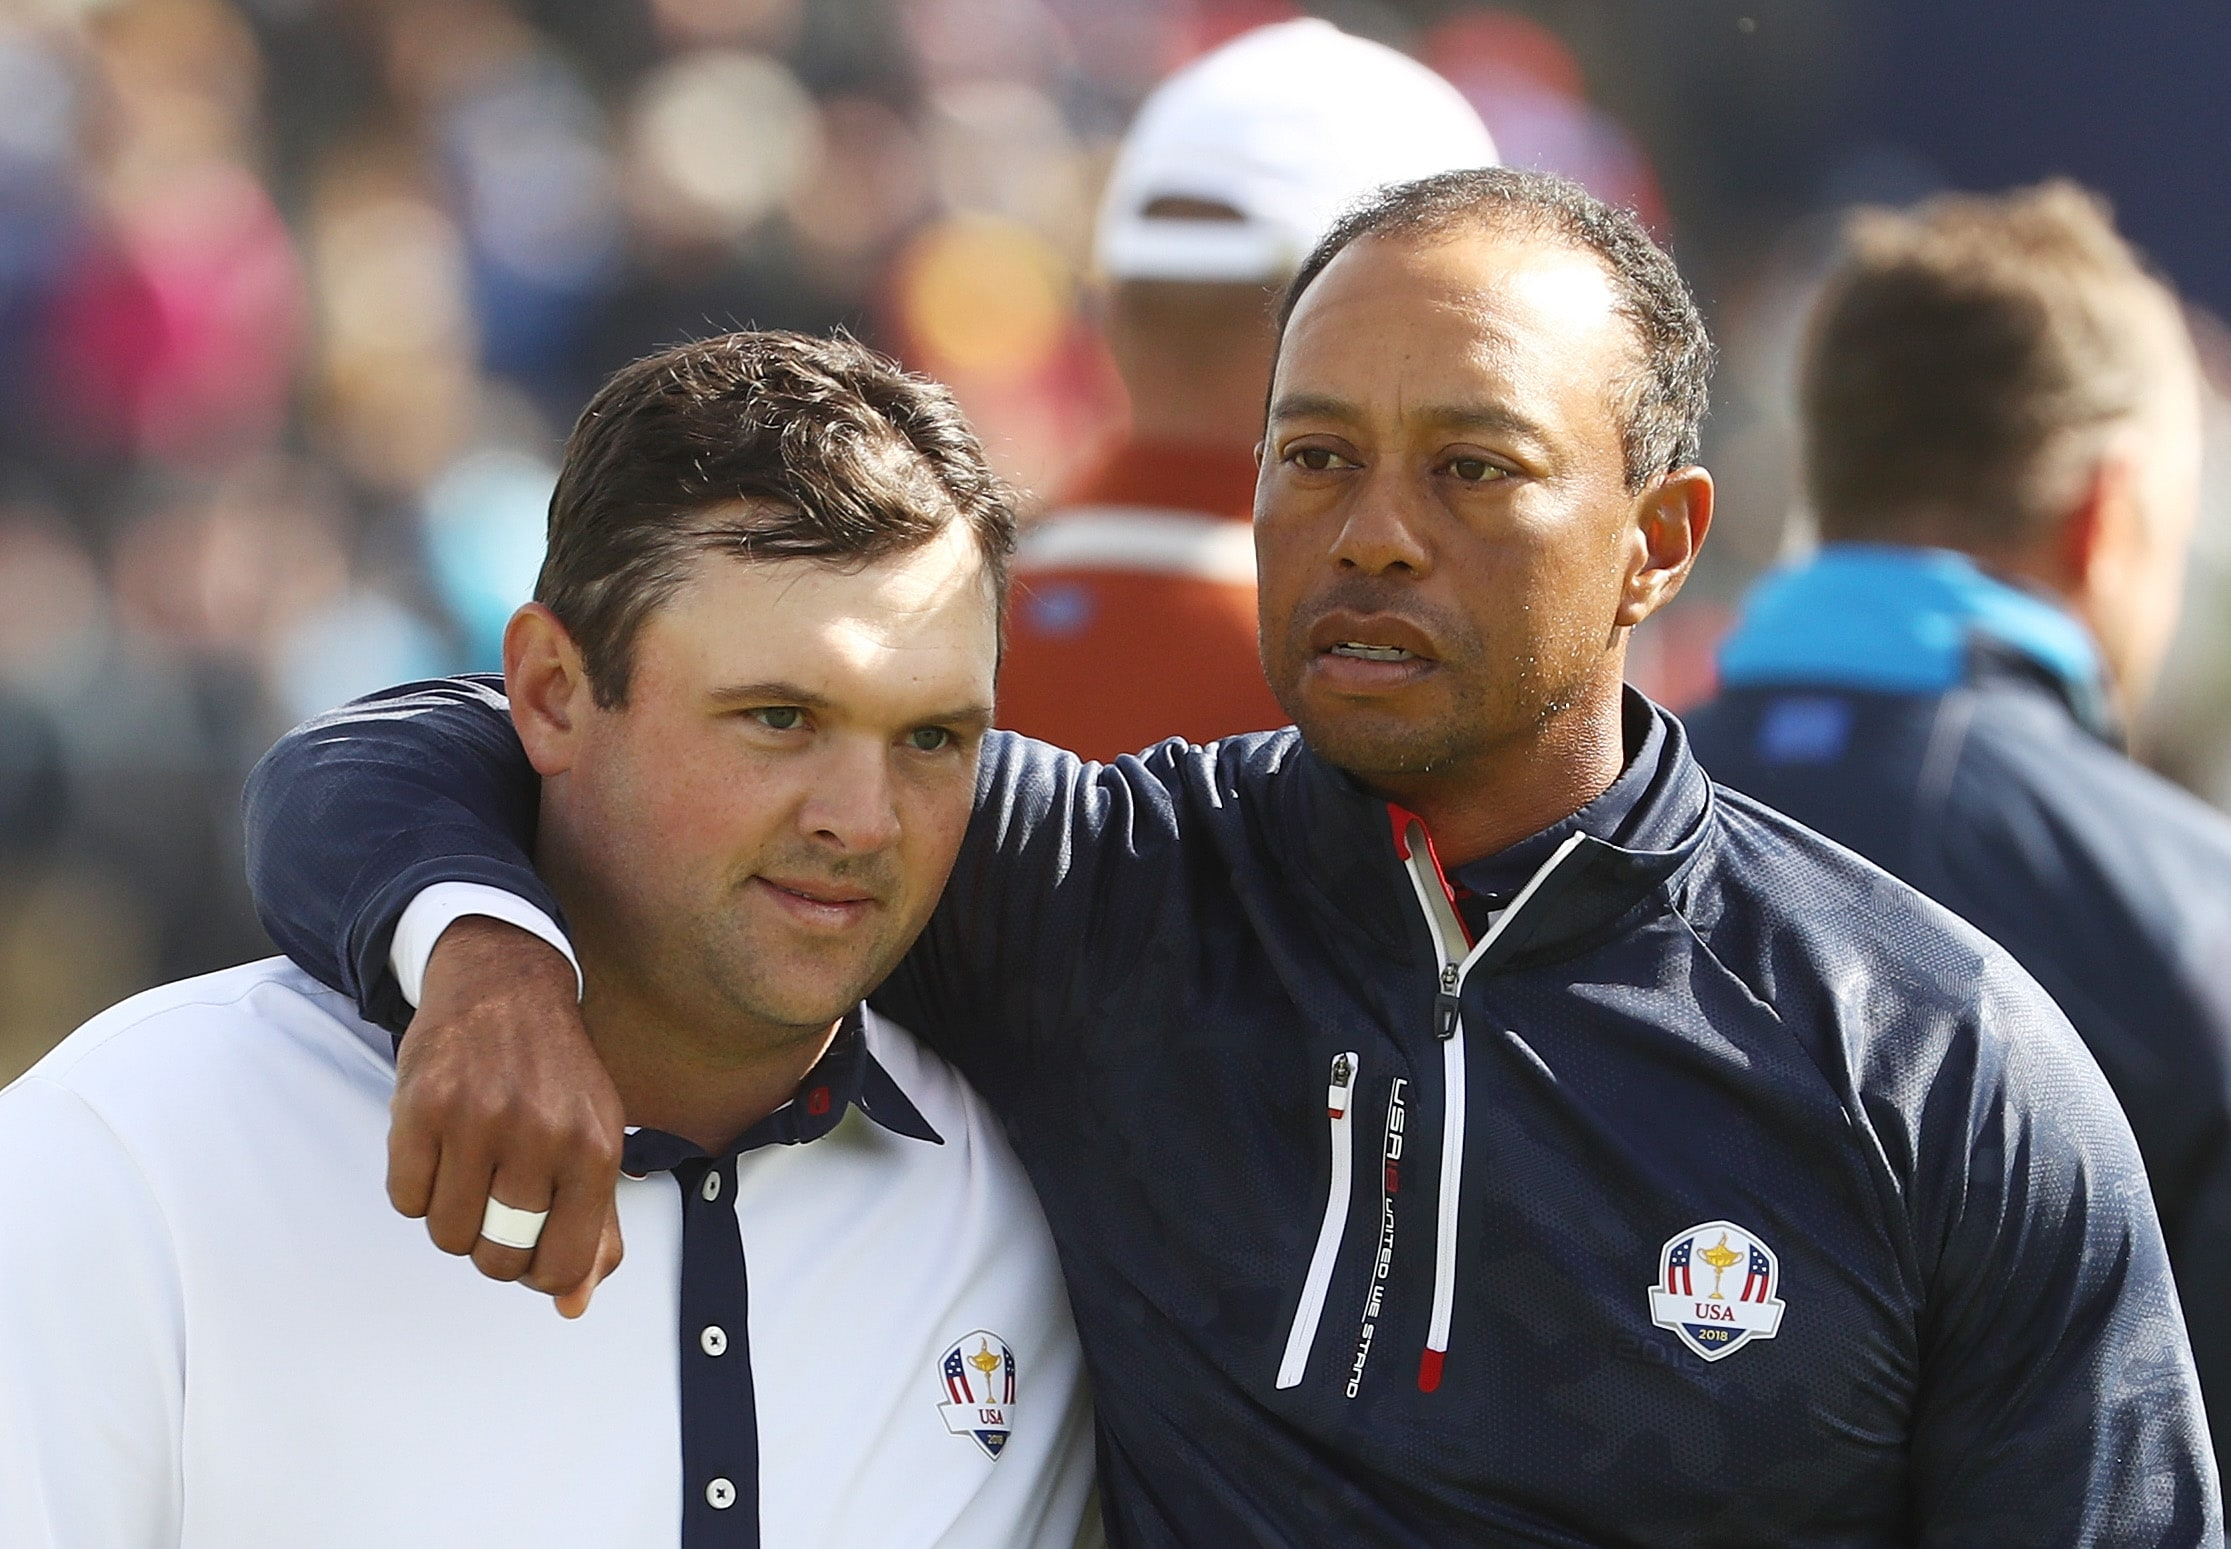 Patrick Reed and Tiger Woods at the 2018 Ryder Cup